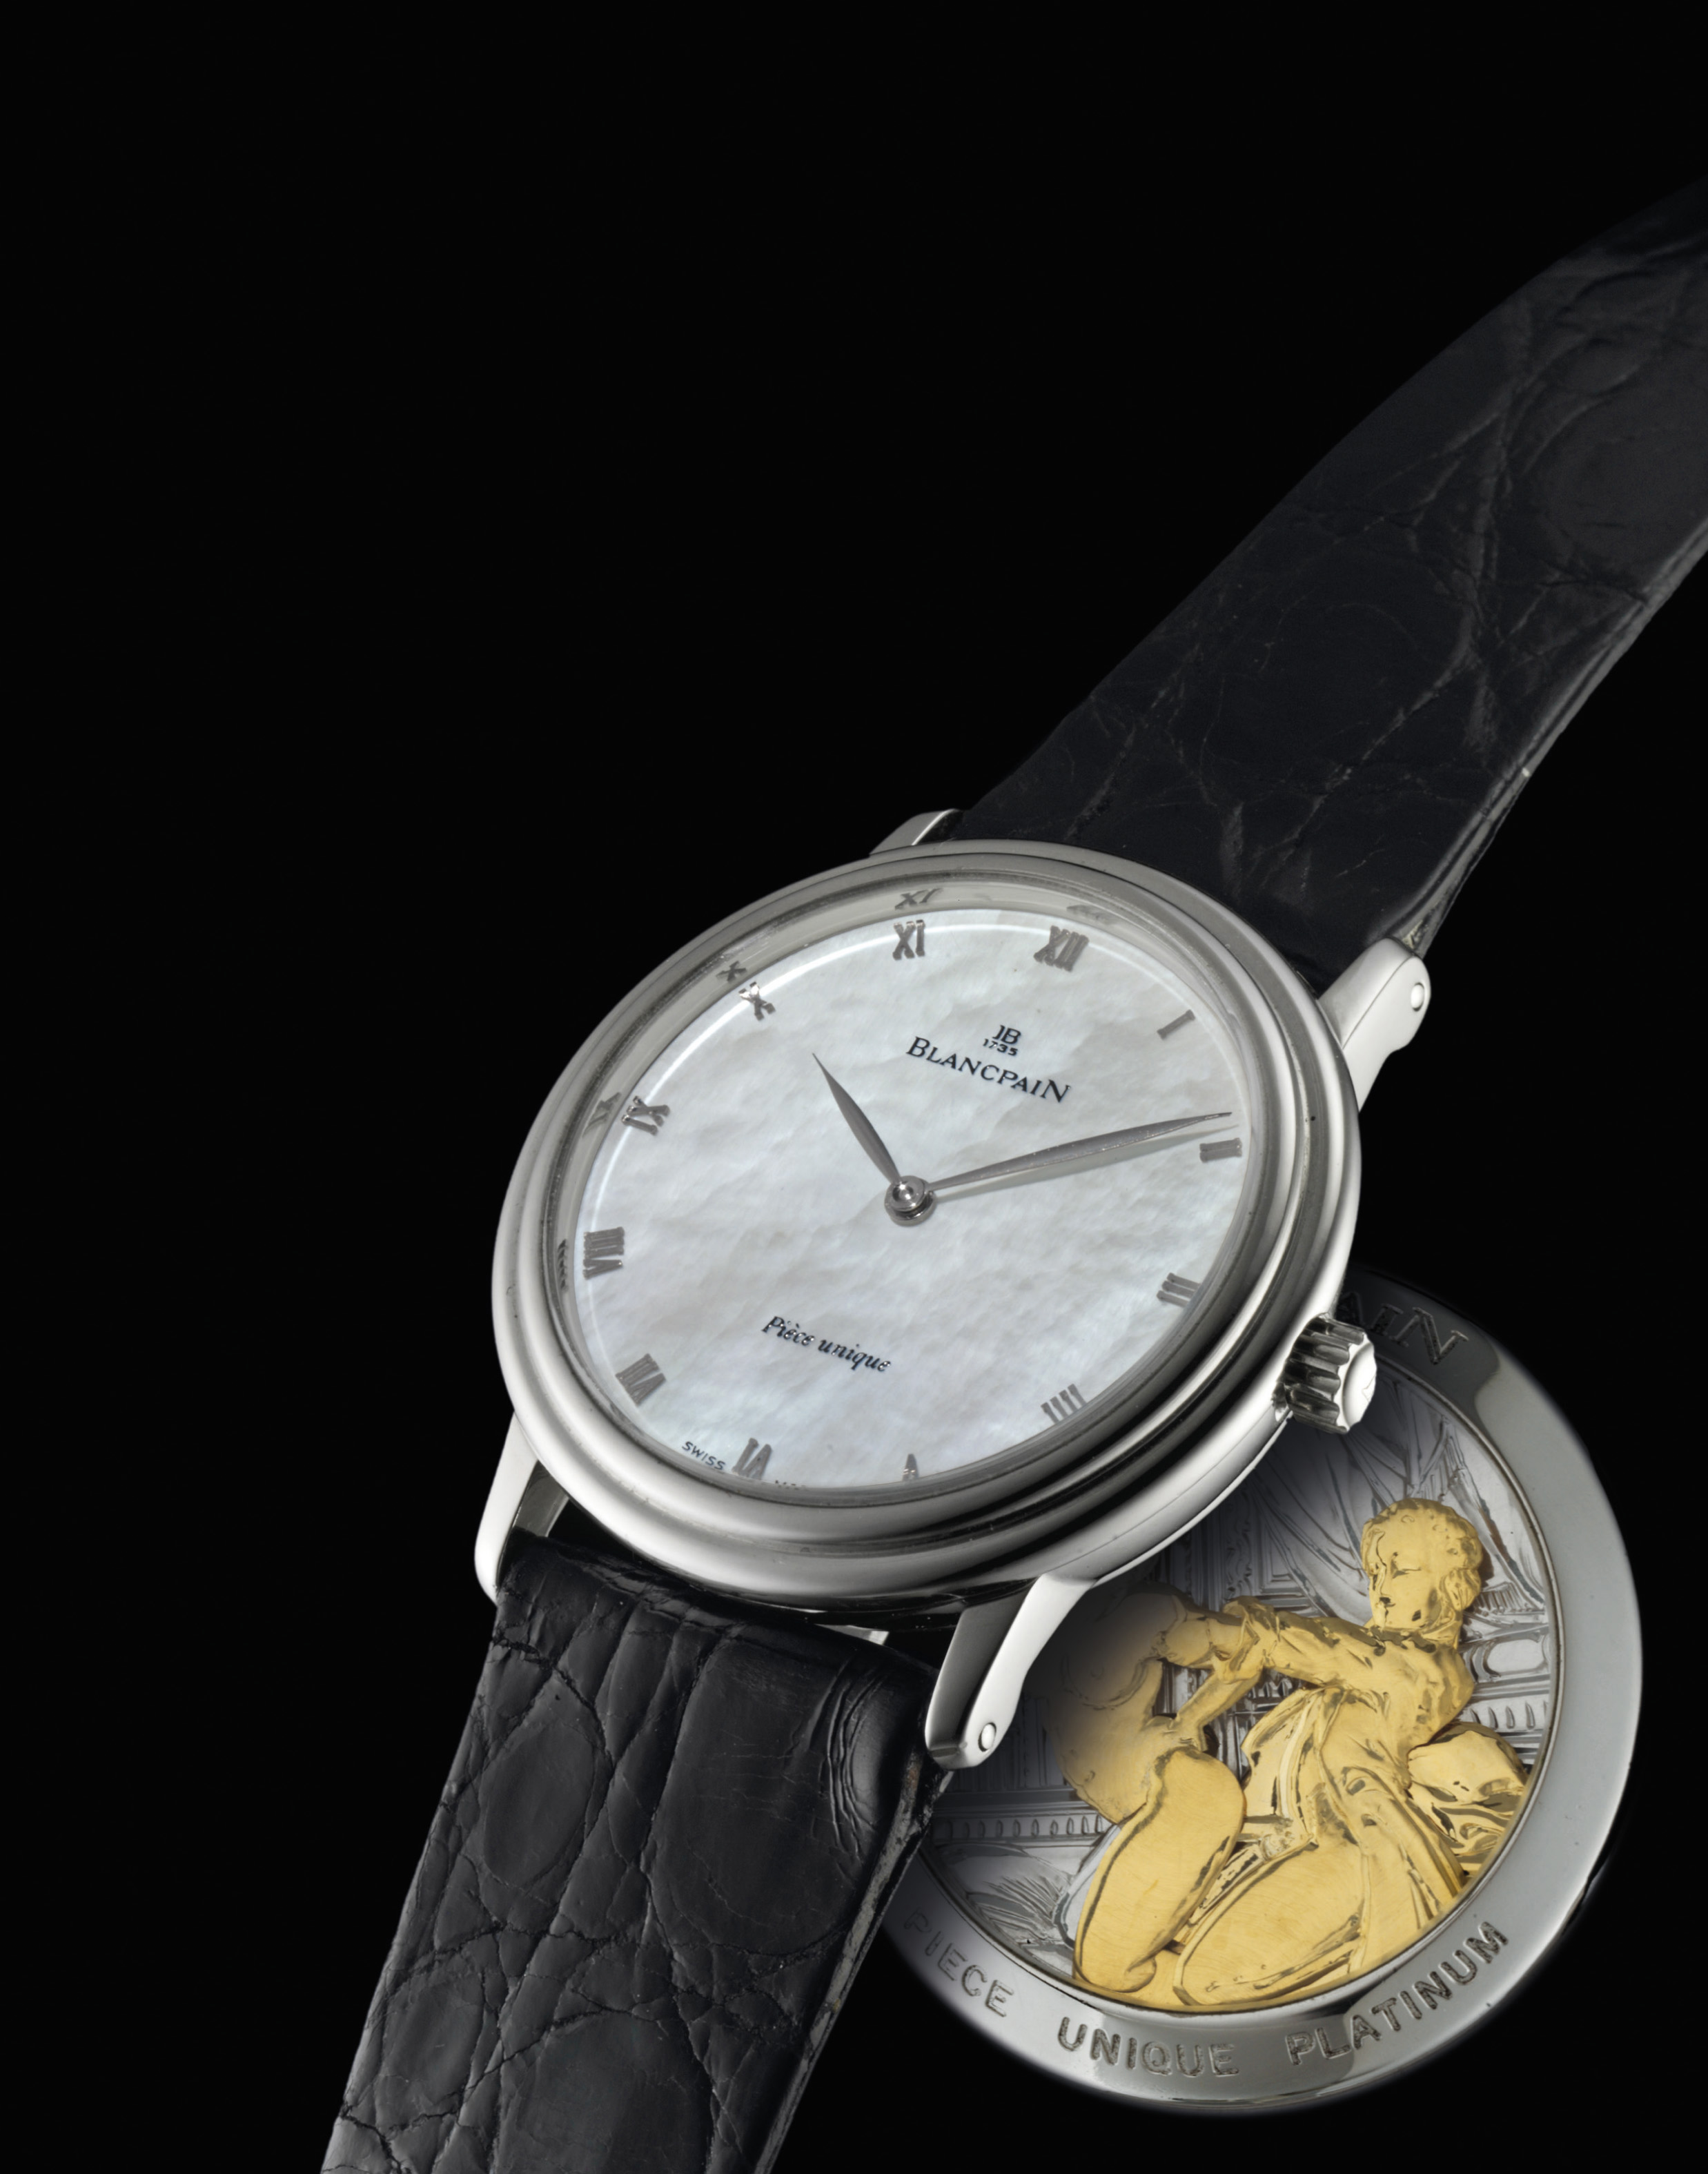 BLANCPAIN. A RARE AND UNIQUE P